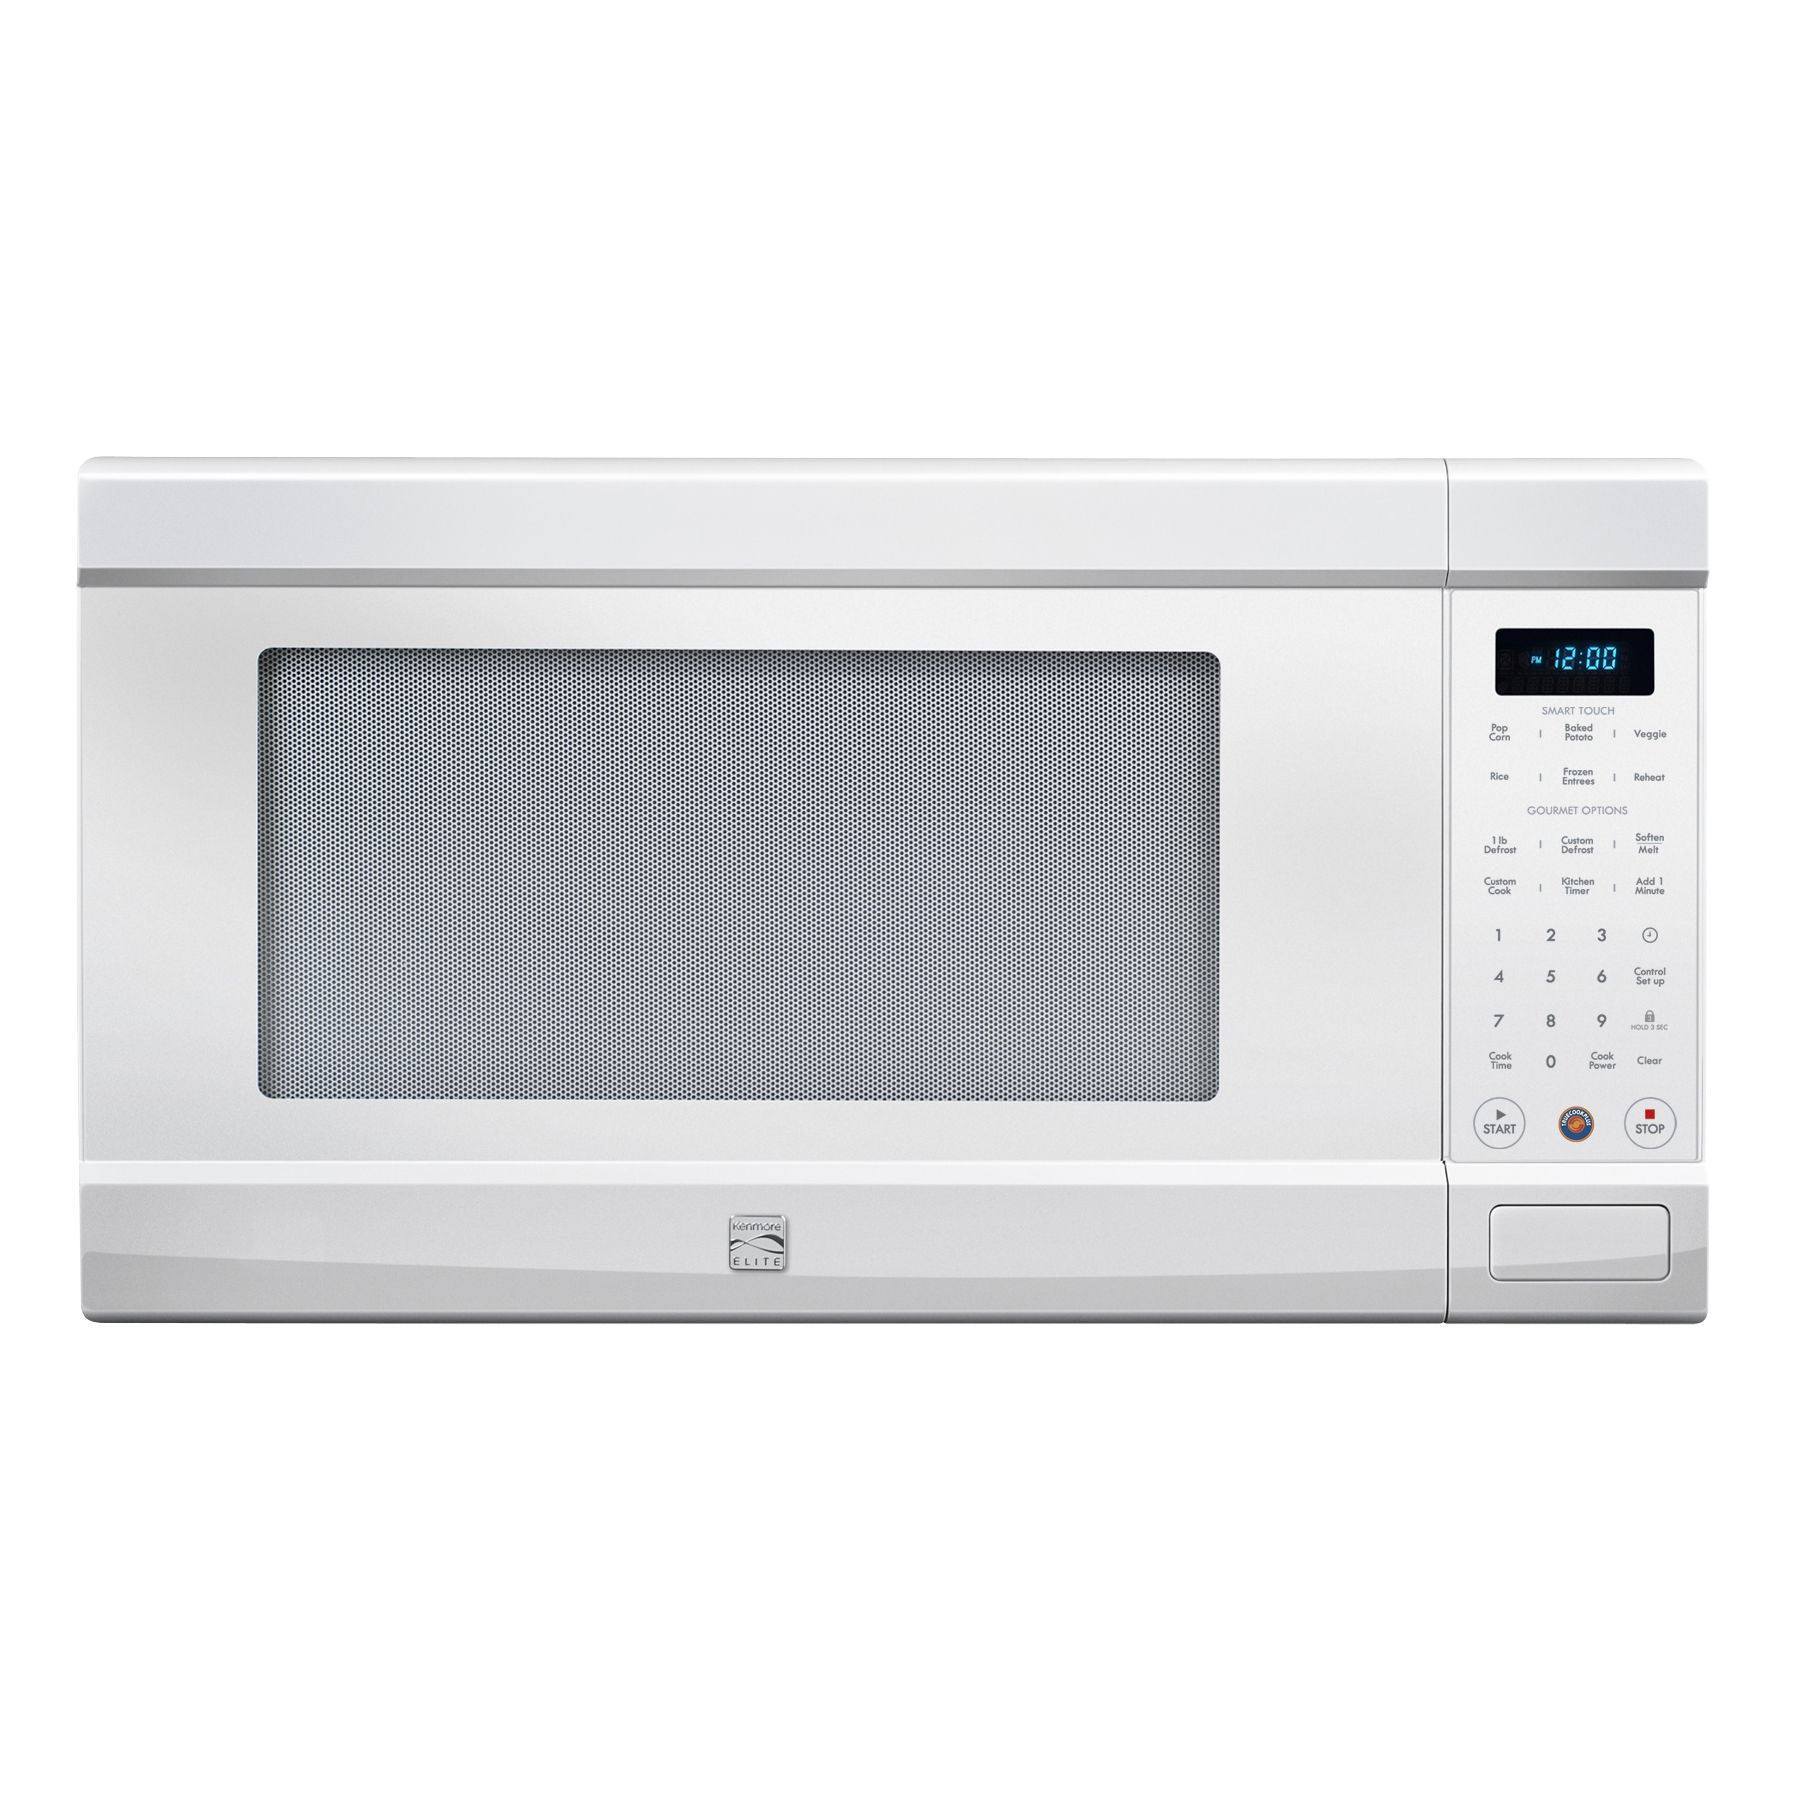 2.0 cu. ft. Countertop Microwave Oven